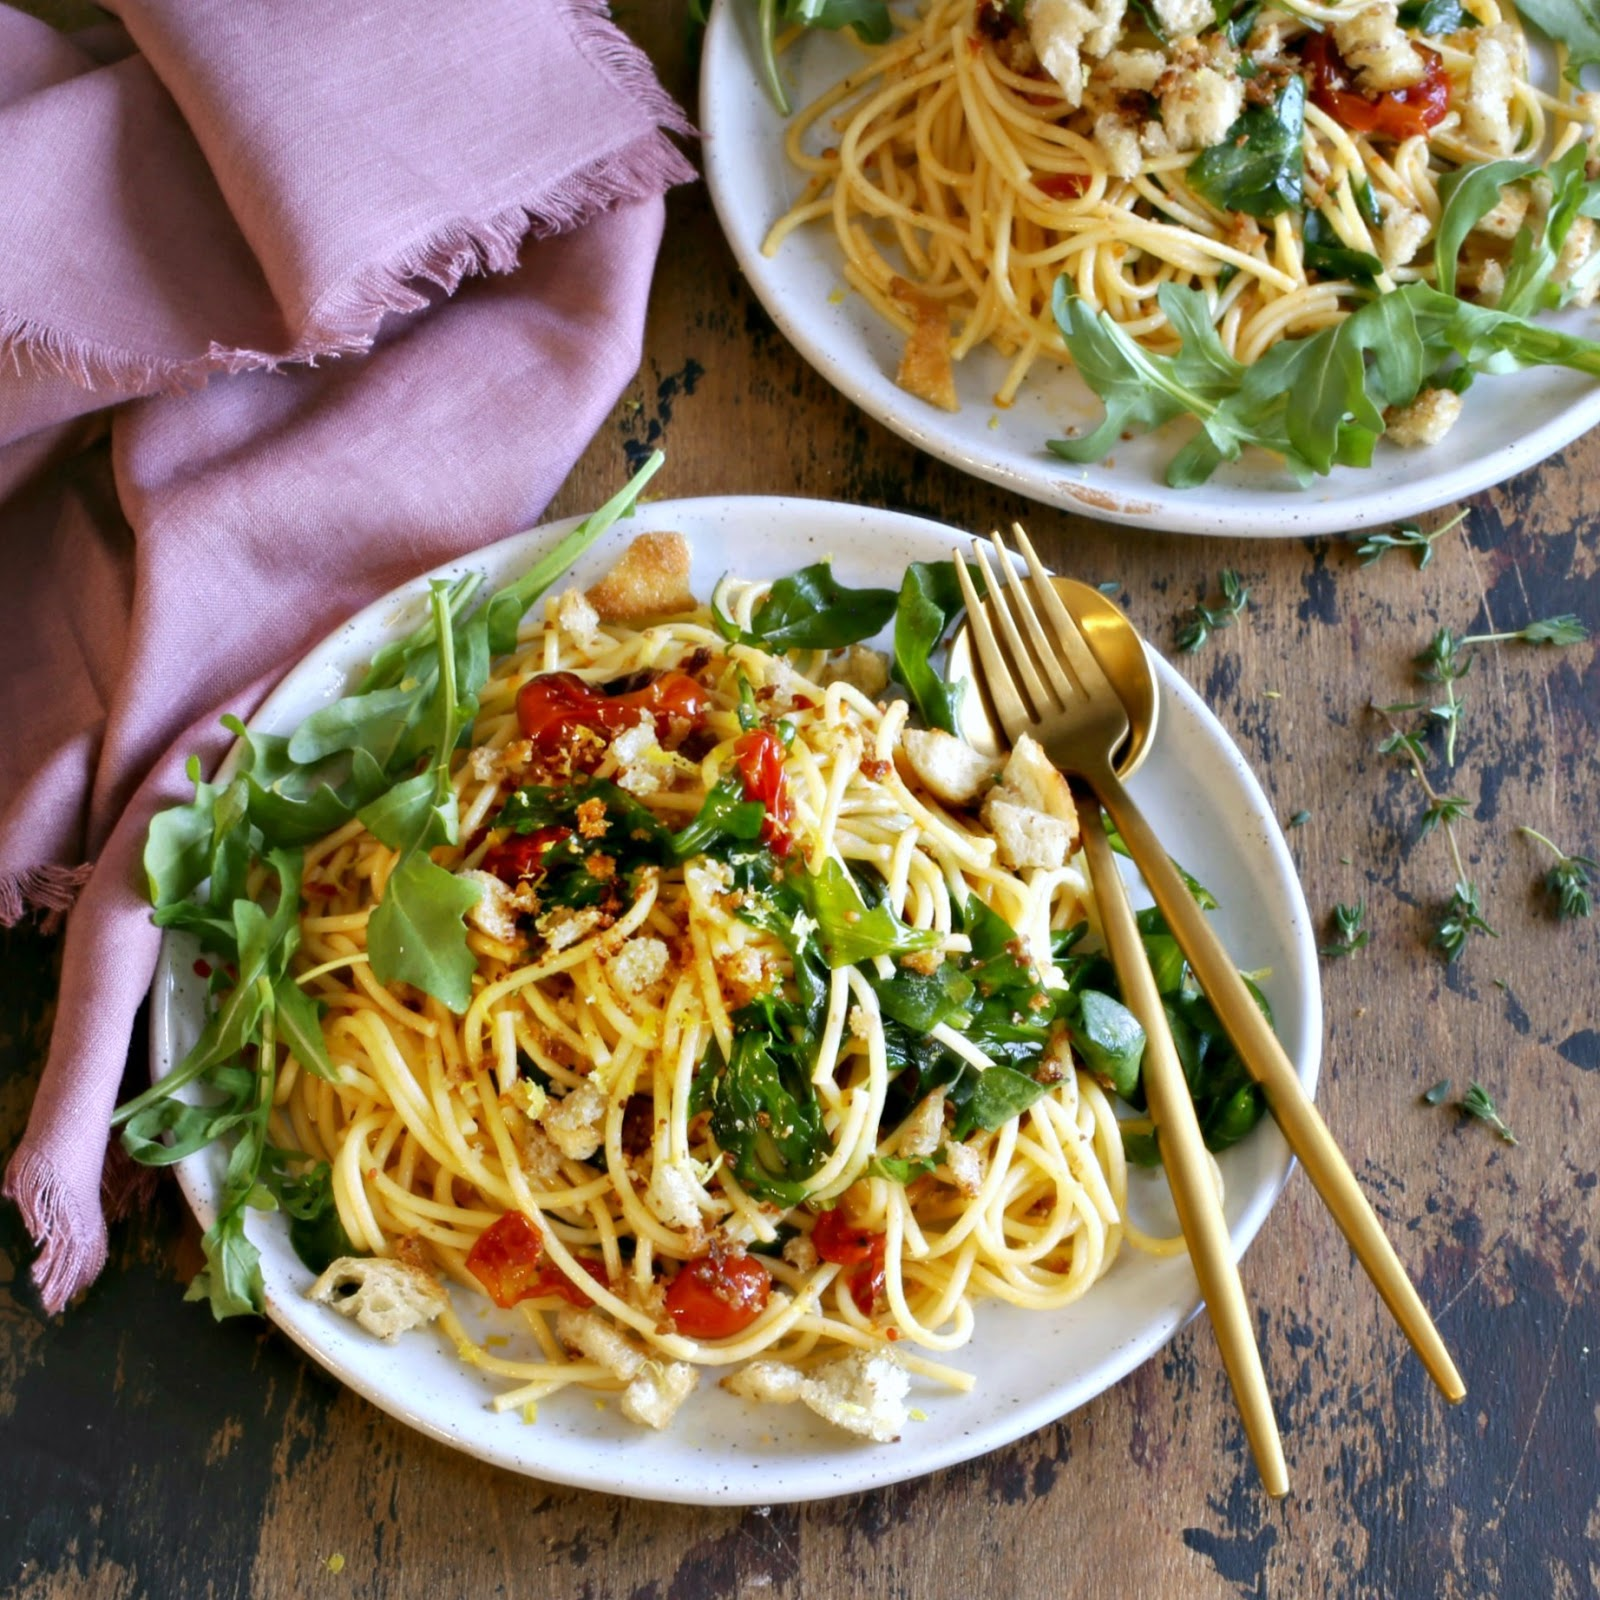 Recipe for a pasta dish with arugula, confit tomatoes and crispy torn bread.